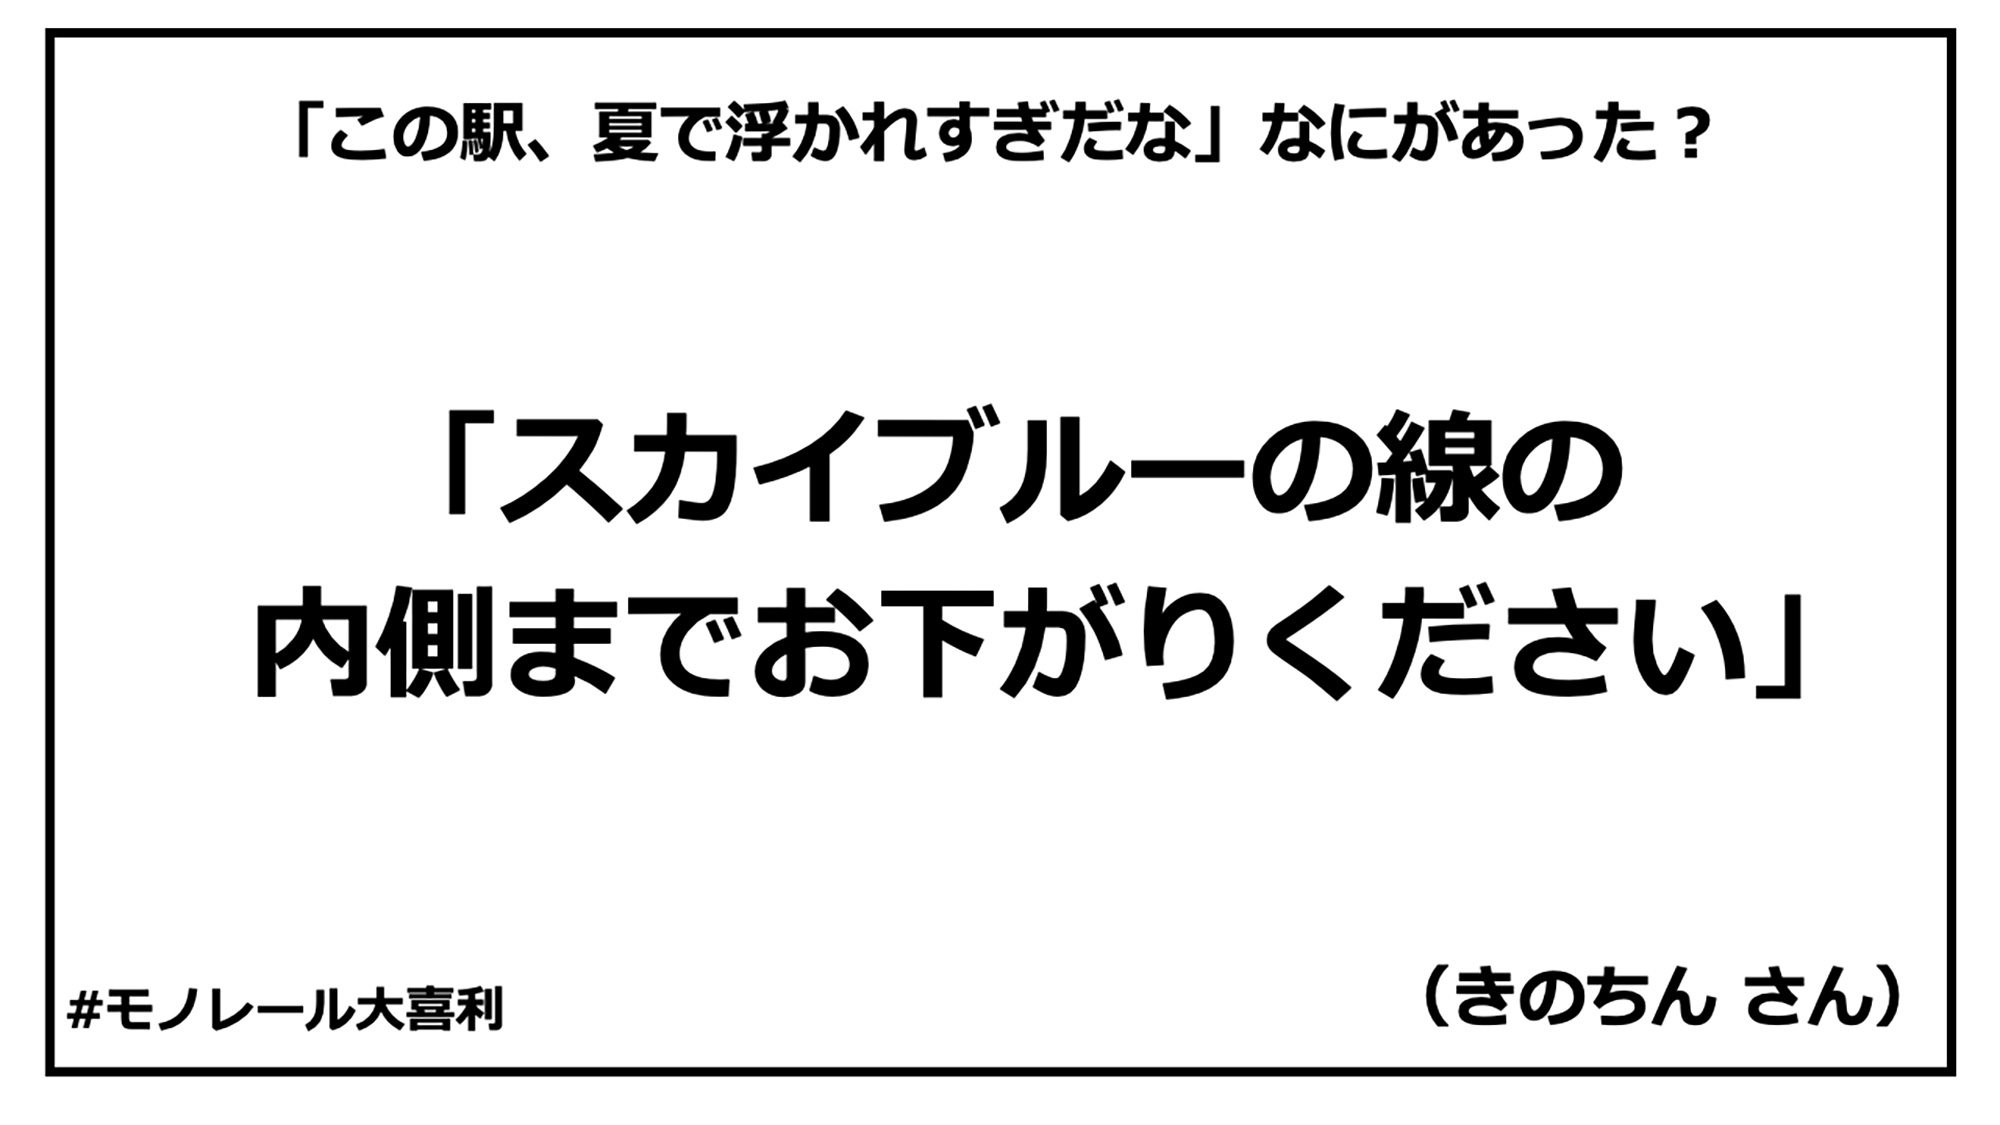 ogiri_answer_26_3.jpg